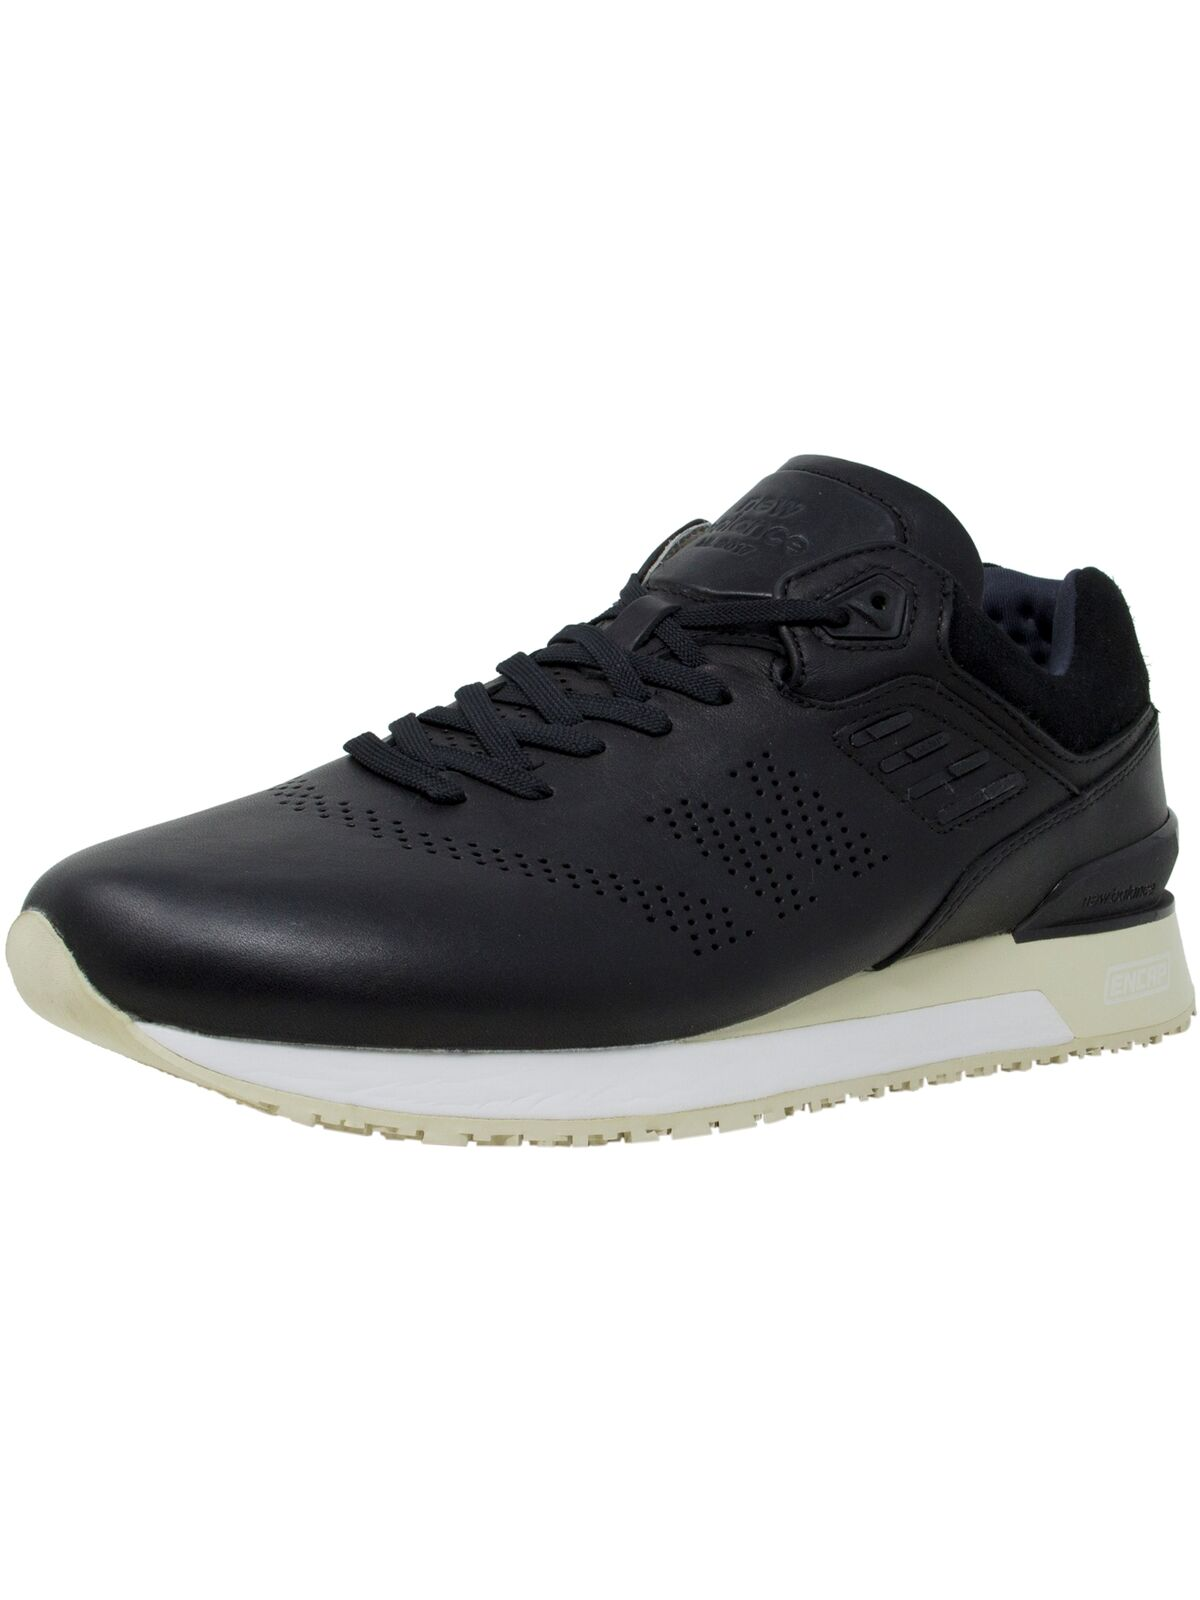 New Balance Men's Ml2017 Ankle-High Leather Fashion Sneaker